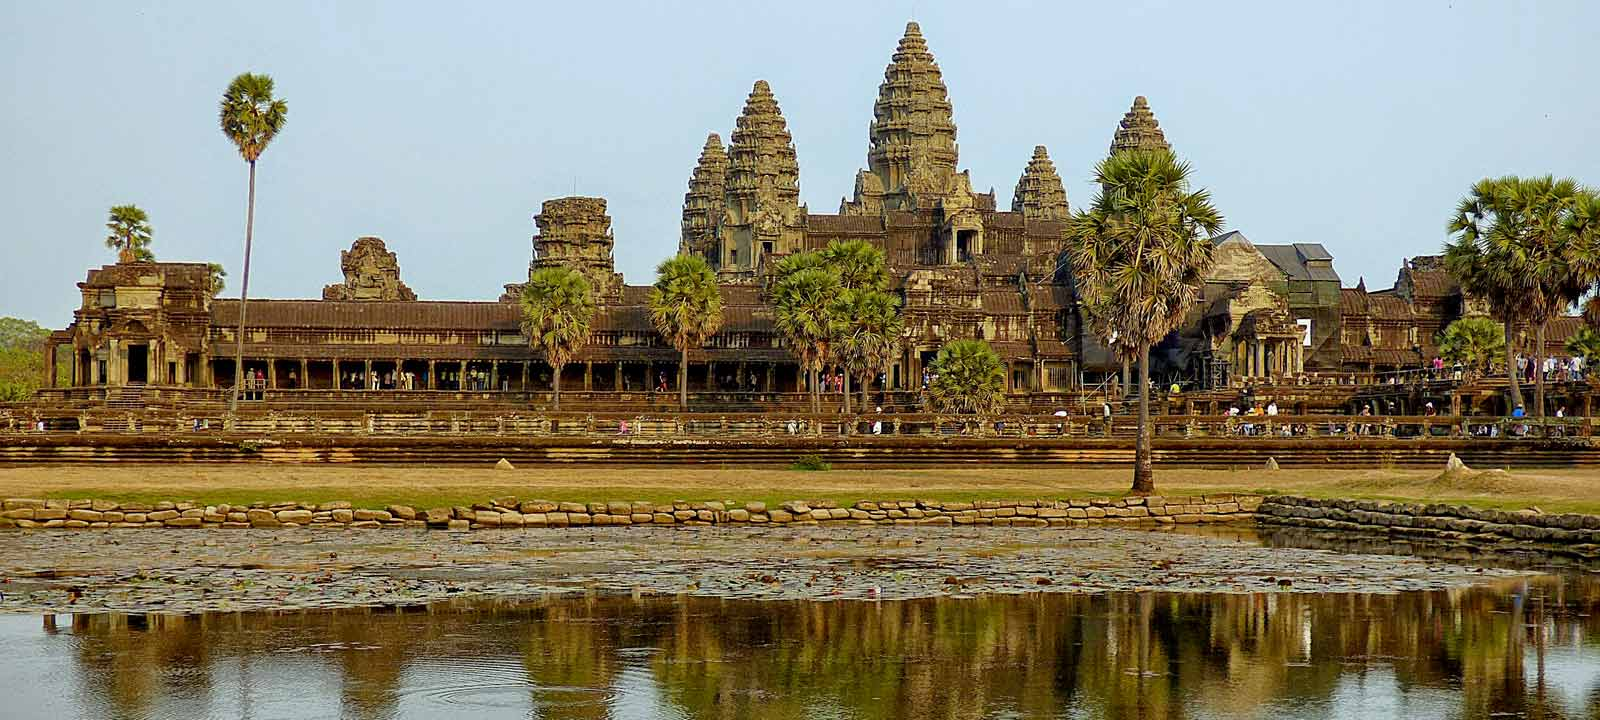 L'architecture d'Angkor